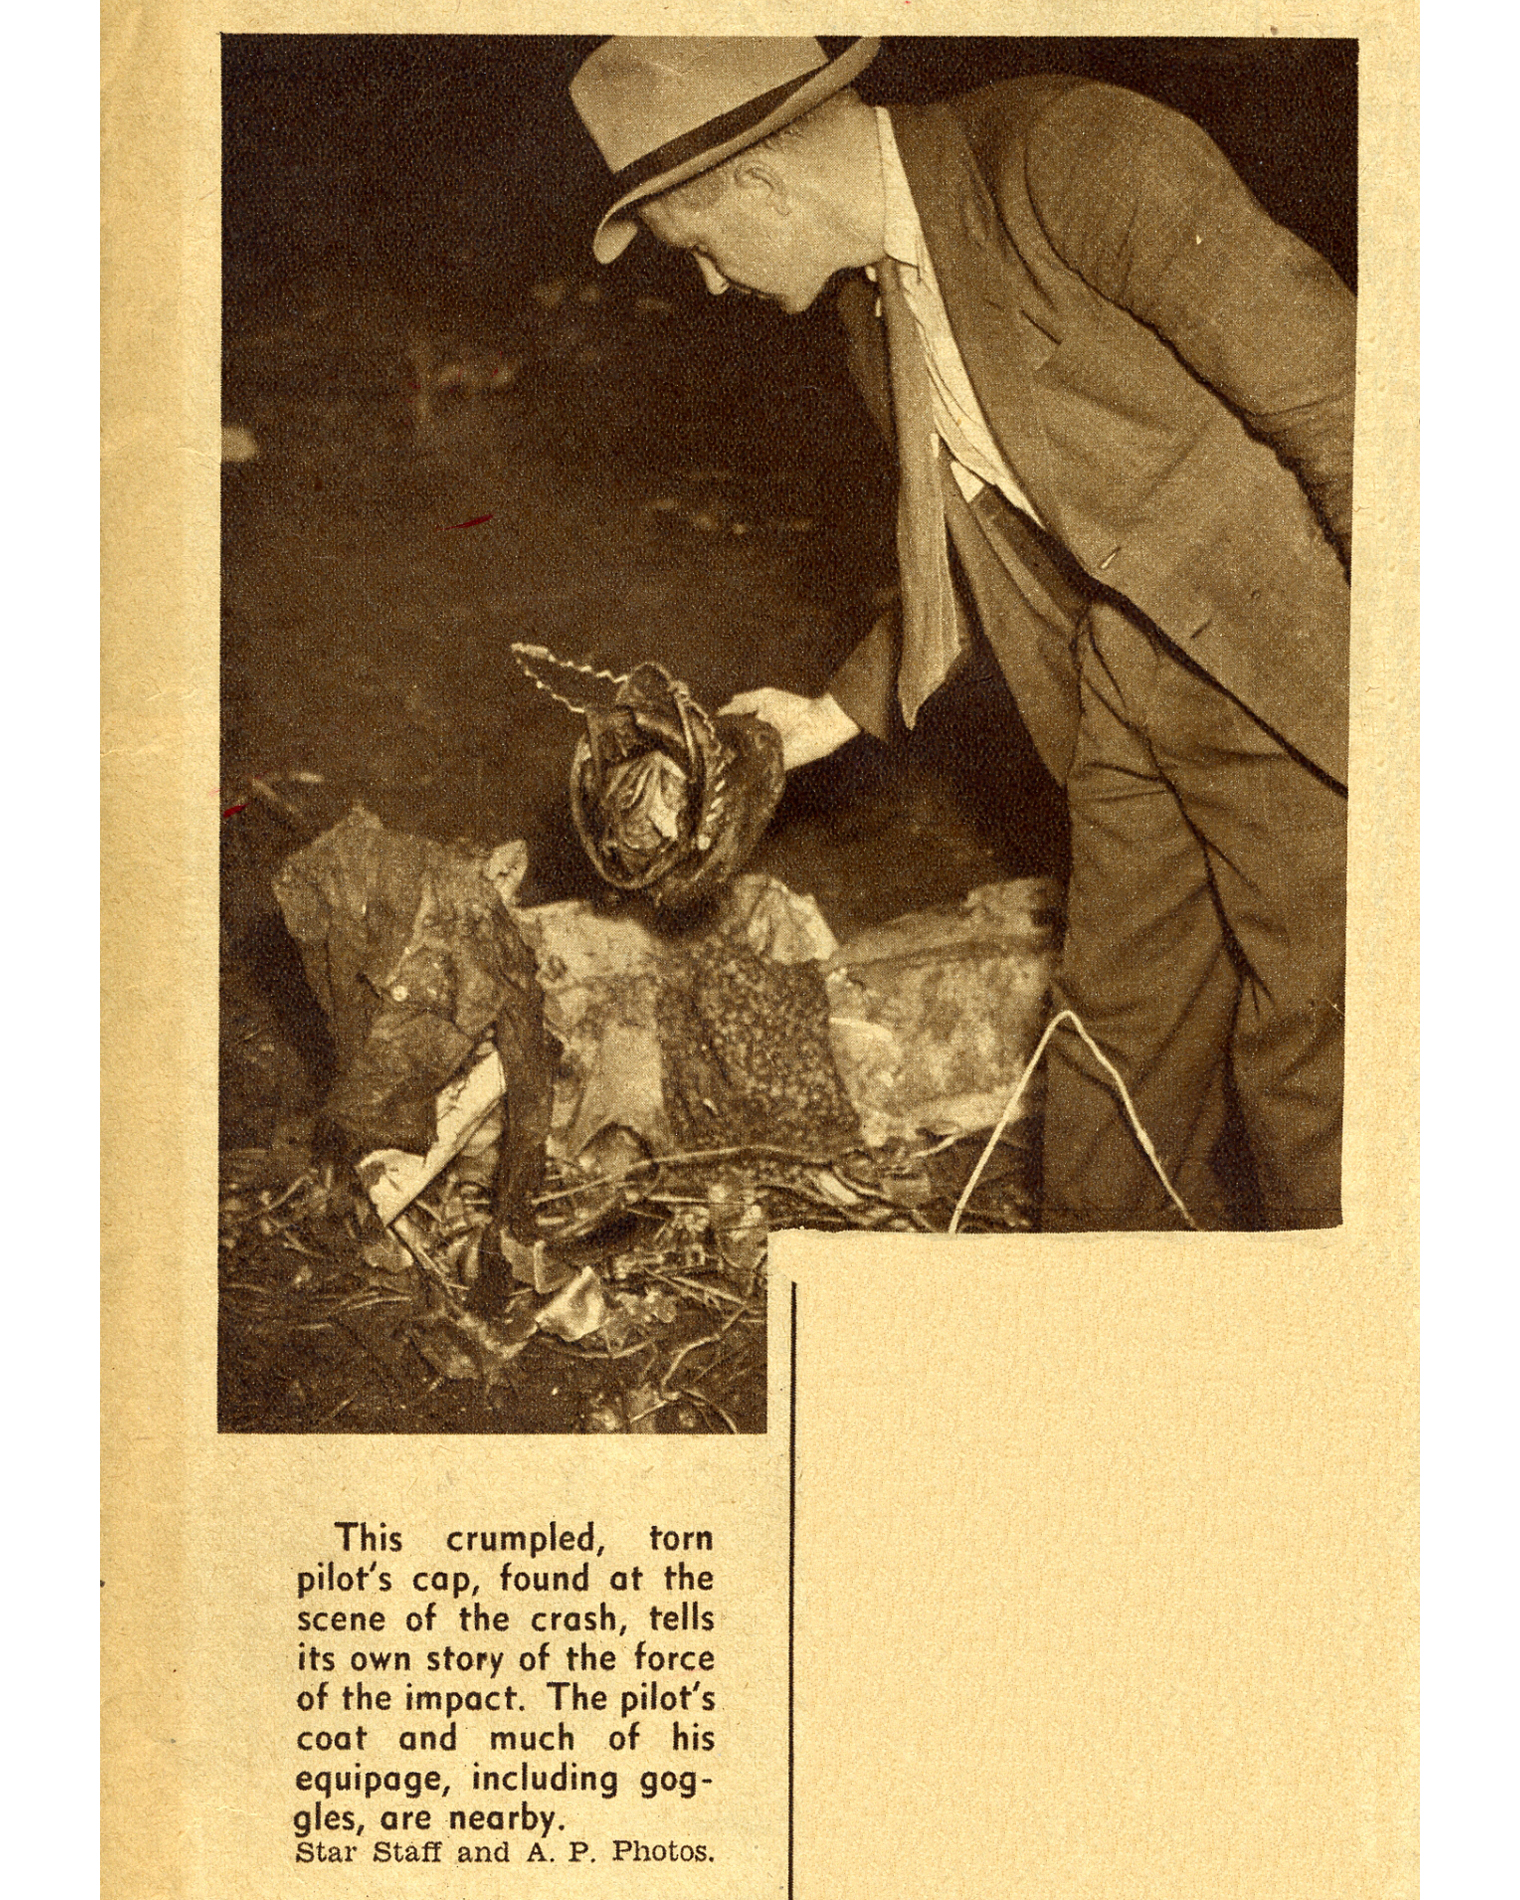 1940-09-08-lovettsville-air-disaster-sunday-star-gravure-section-washington-dc_photo-2_8x10-inches